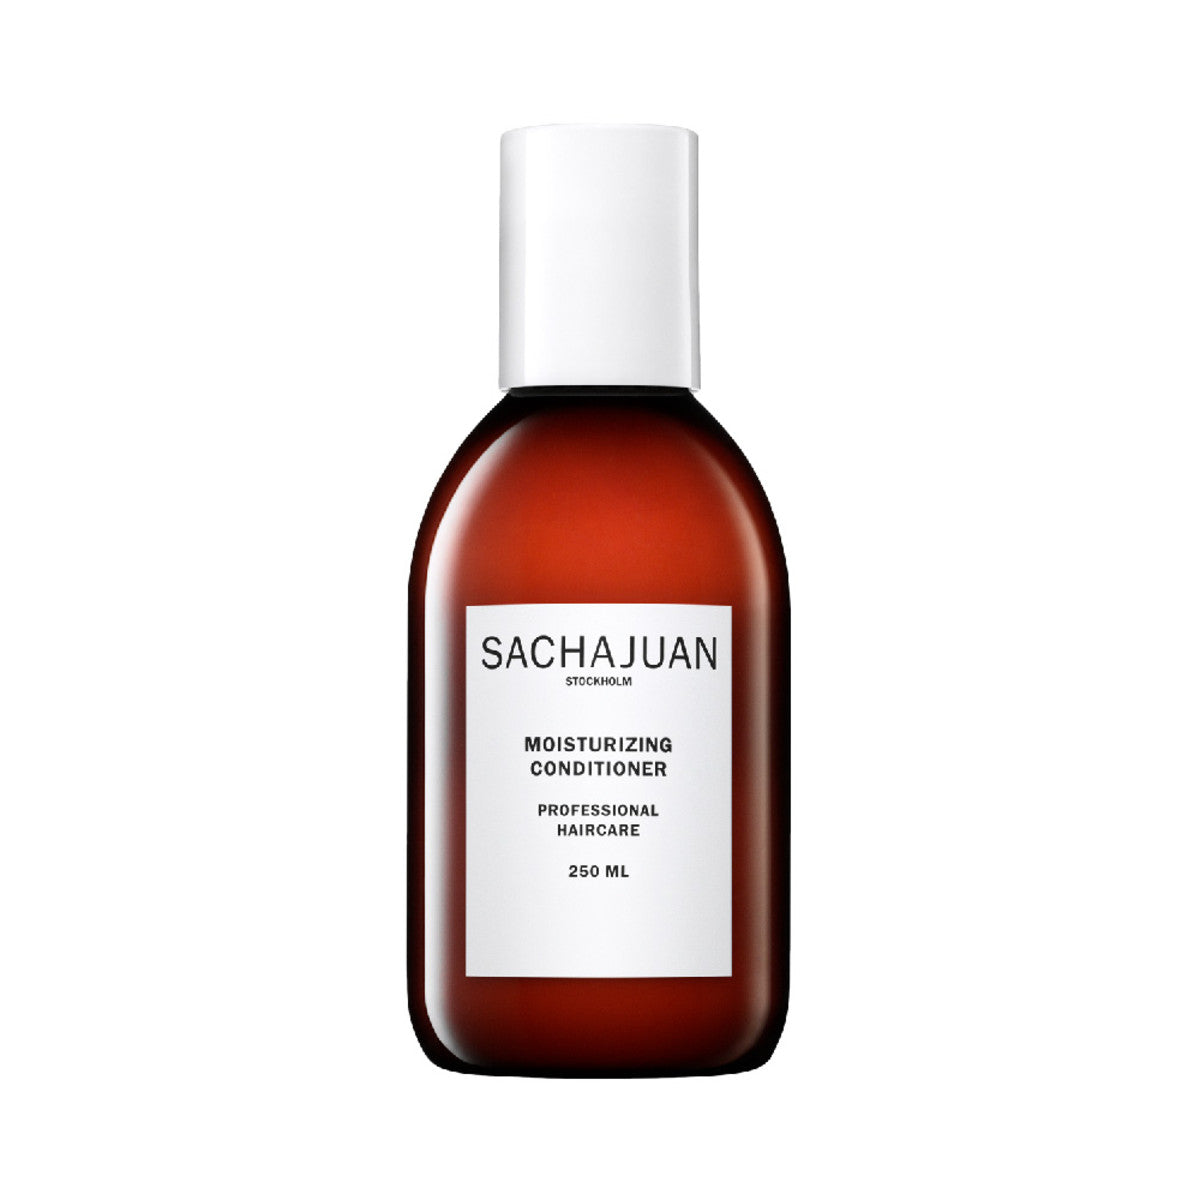 SACHAJUAN Moisturizing Conditioner 250 ml - Brazilian Soul Beauty SACHAJUAN - Brazilian Soul Beauty